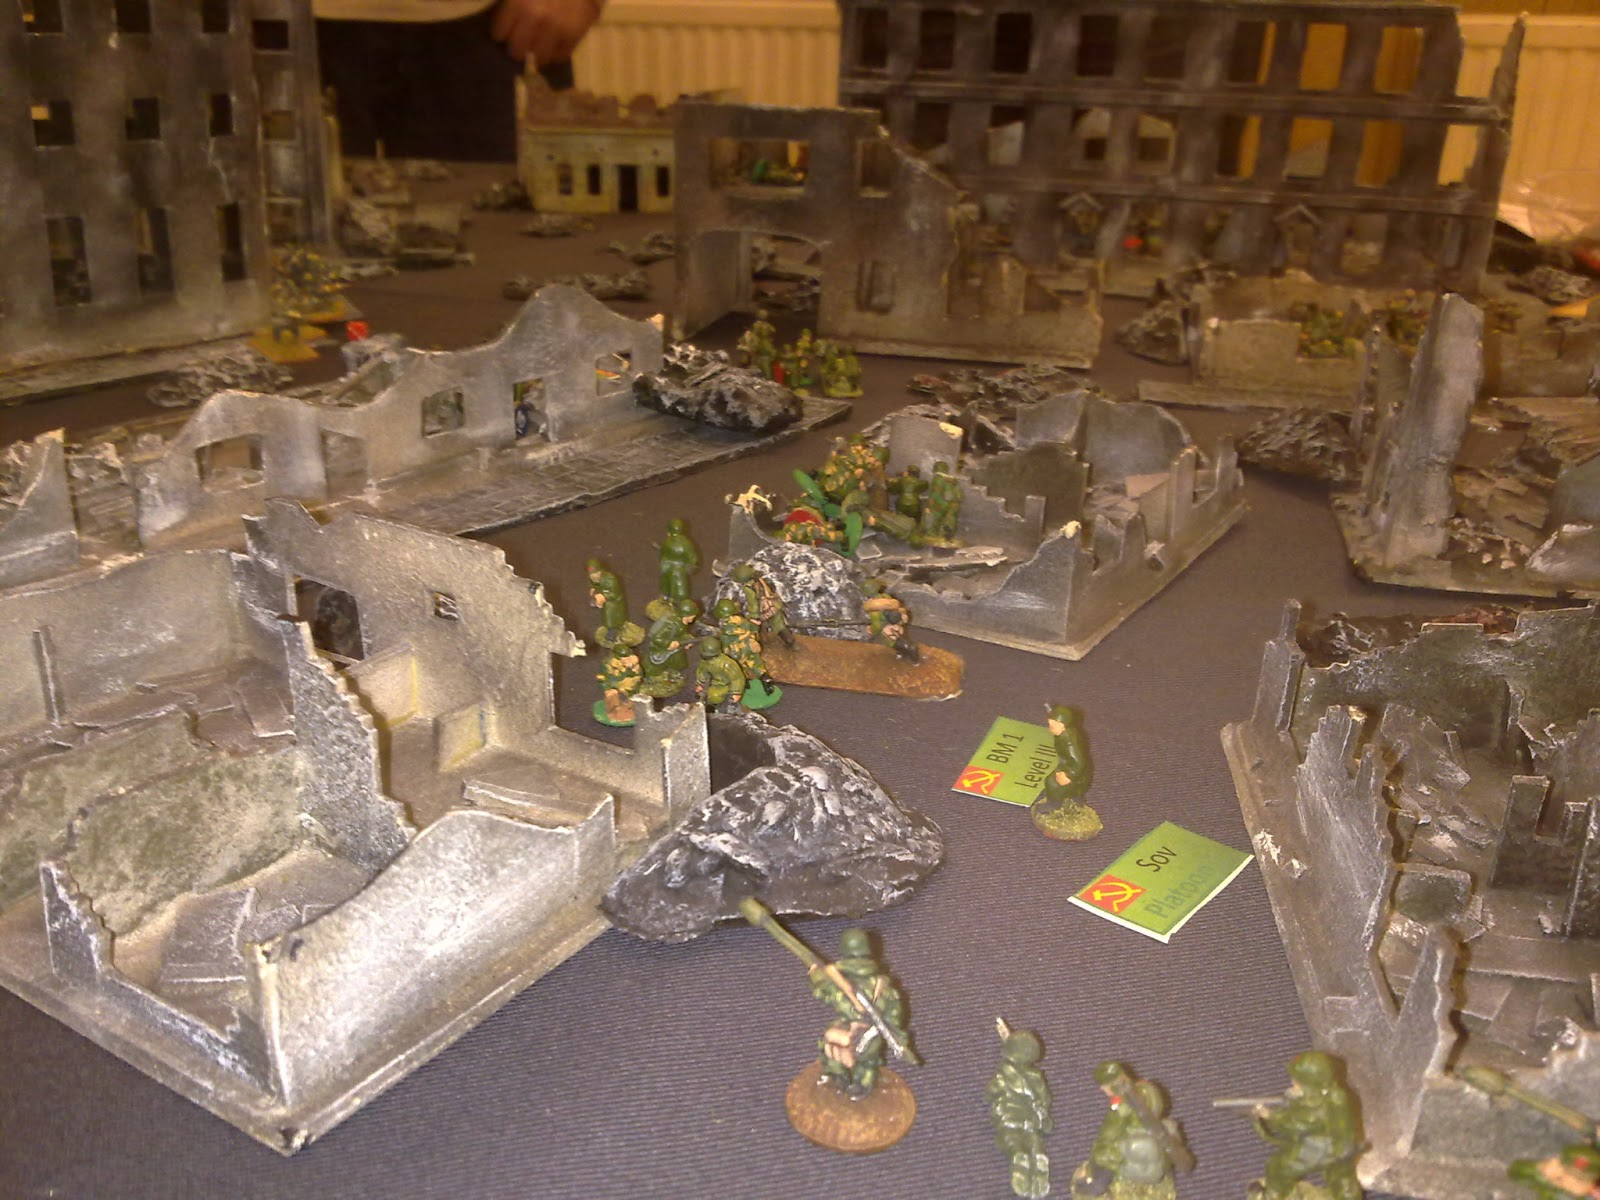 THE GAME CONSCRIPTS CANNOT OVERCOME THE RUBBLE